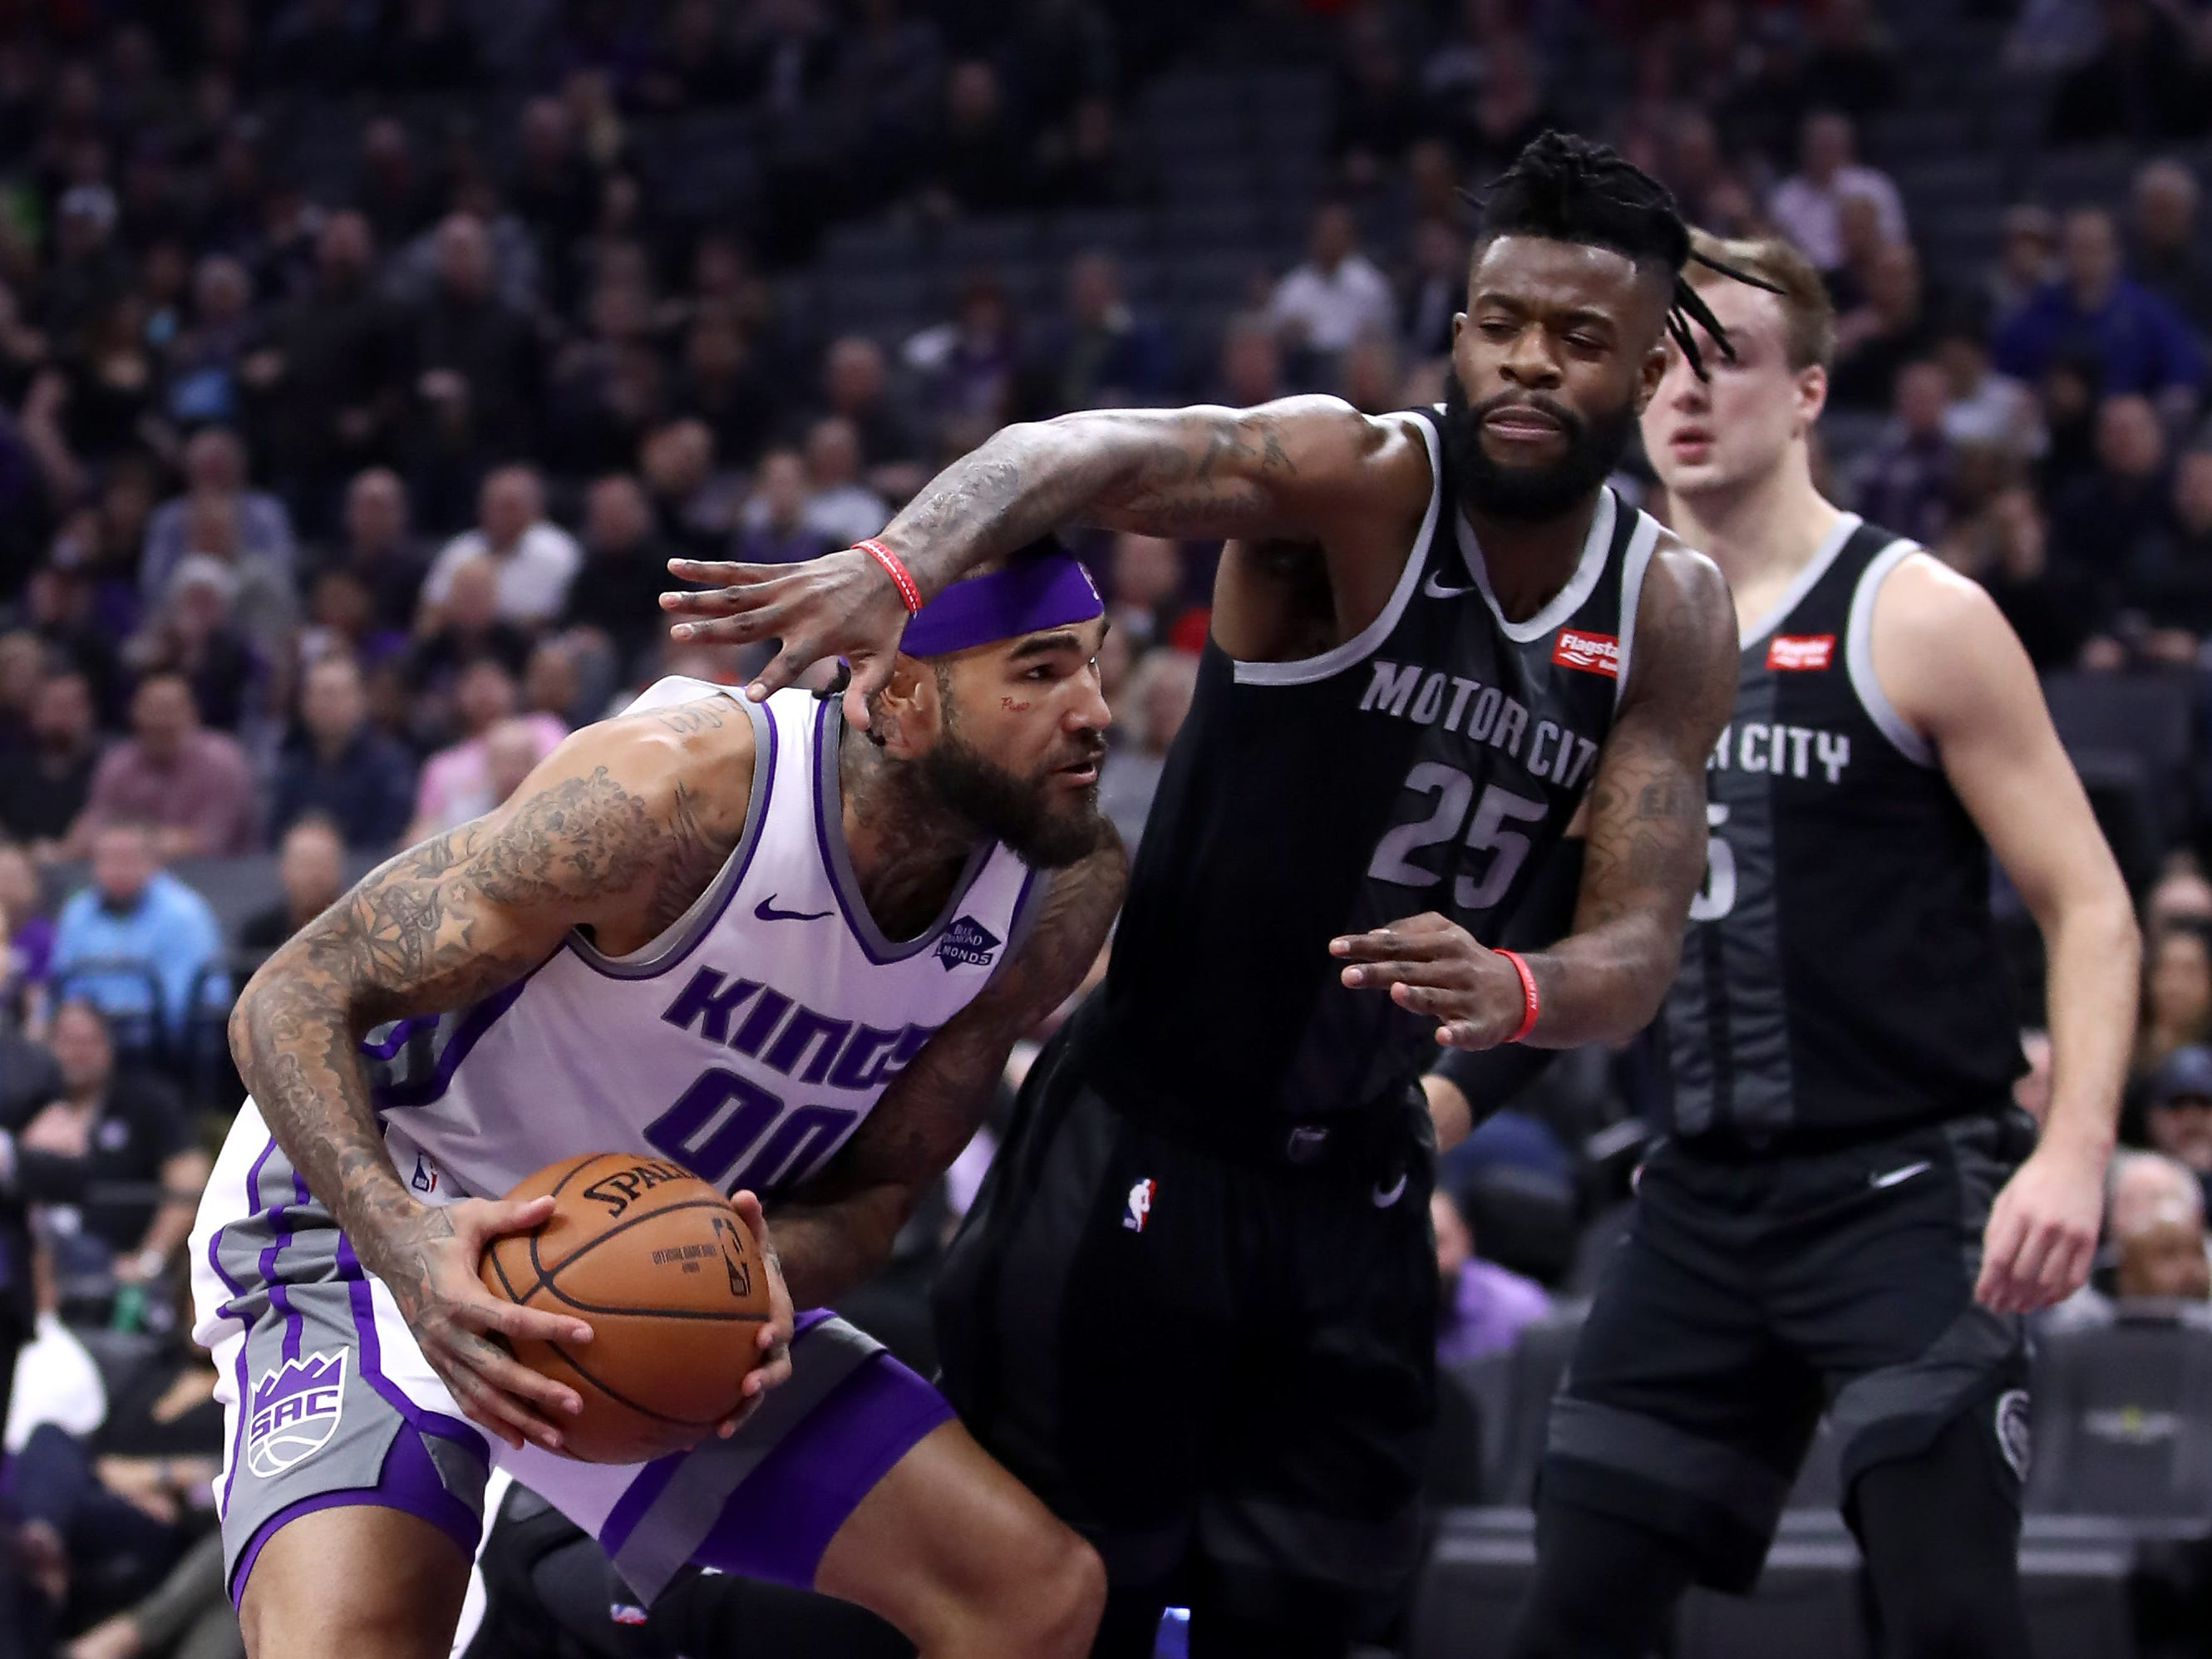 Willie Cauley-Stein #00 of the Sacramento Kings is guarded by Reggie Bullock #25 of the Detroit Pistons at Golden 1 Center on January 10, 2019 in Sacramento, California.